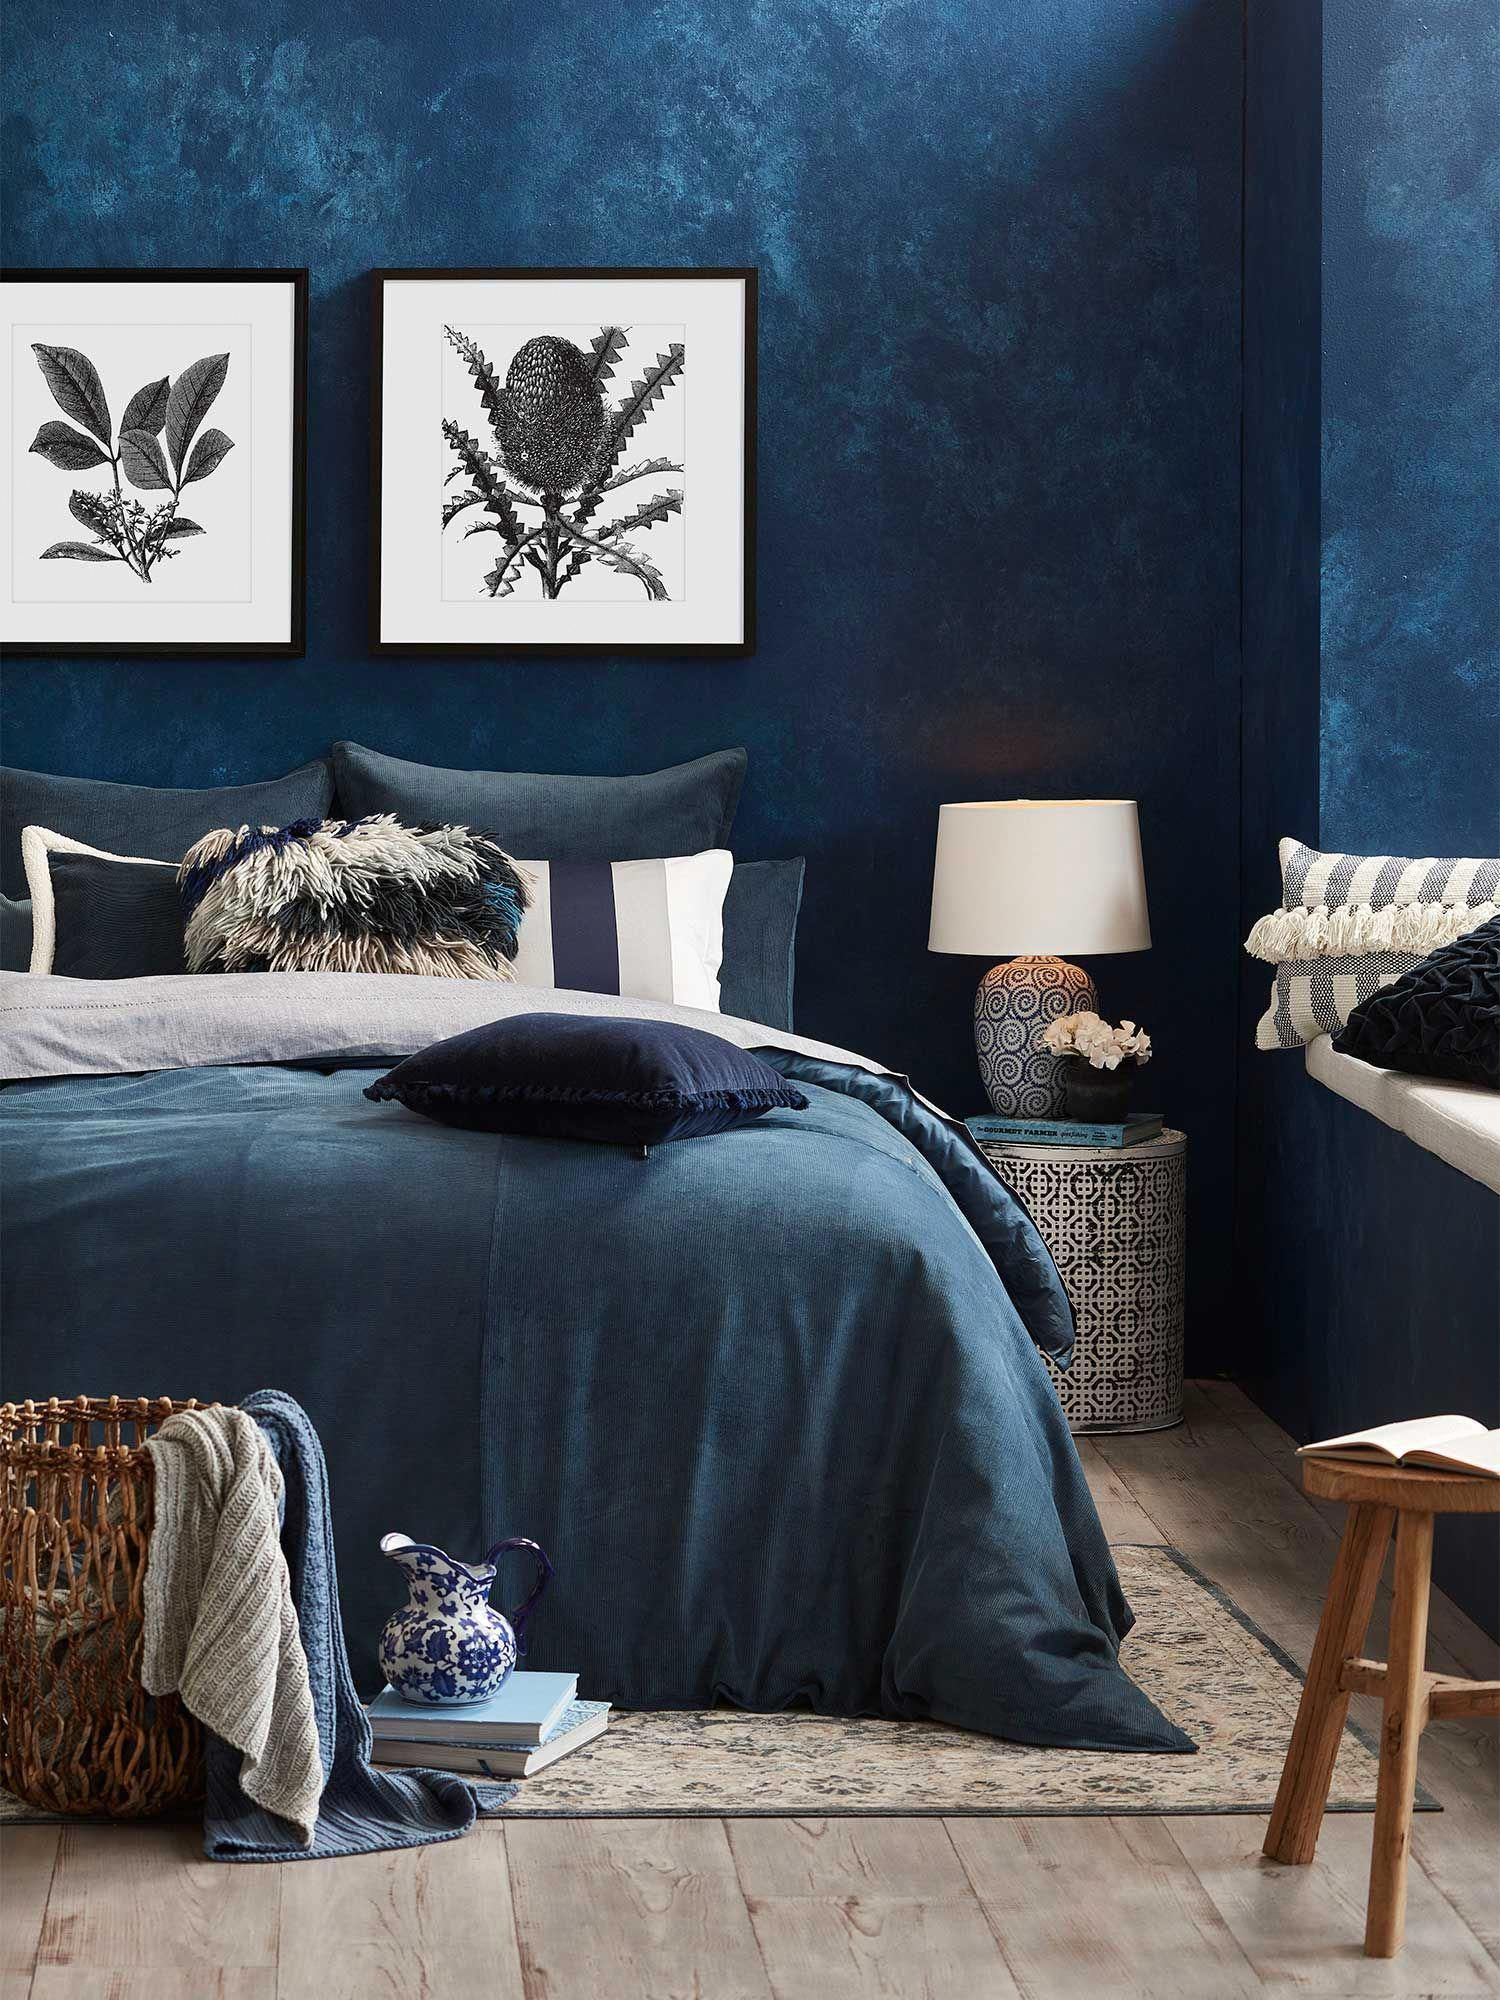 Bedroom Ideas From Comfortable To Truly Amazing Really Cozy To Imaginative Decor Tips To Make A Cl Feature Wall Bedroom Blue Bedroom Walls Wall Decor Bedroom